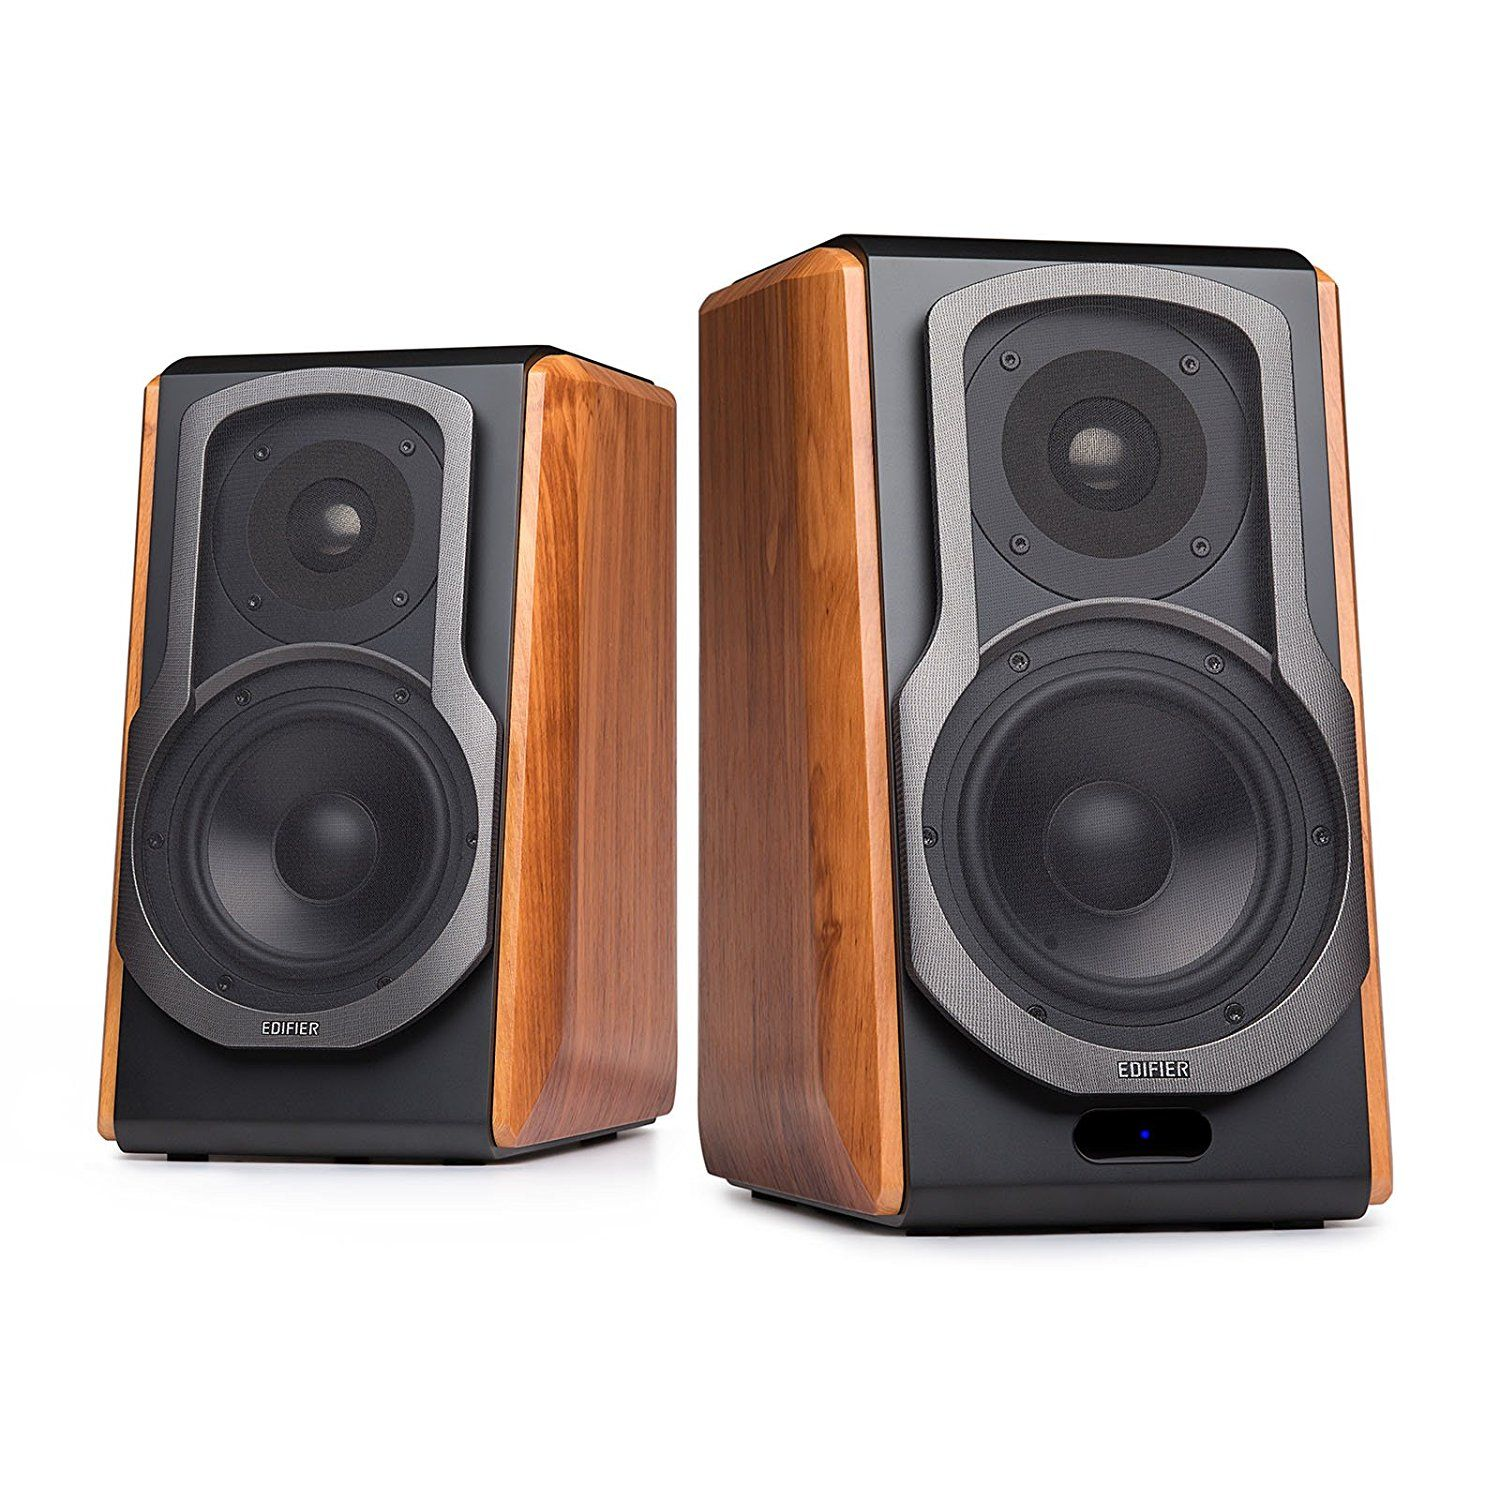 hi motion logan gear review martin cherry martinlogan hrac speakers bookshelf reviews speaker